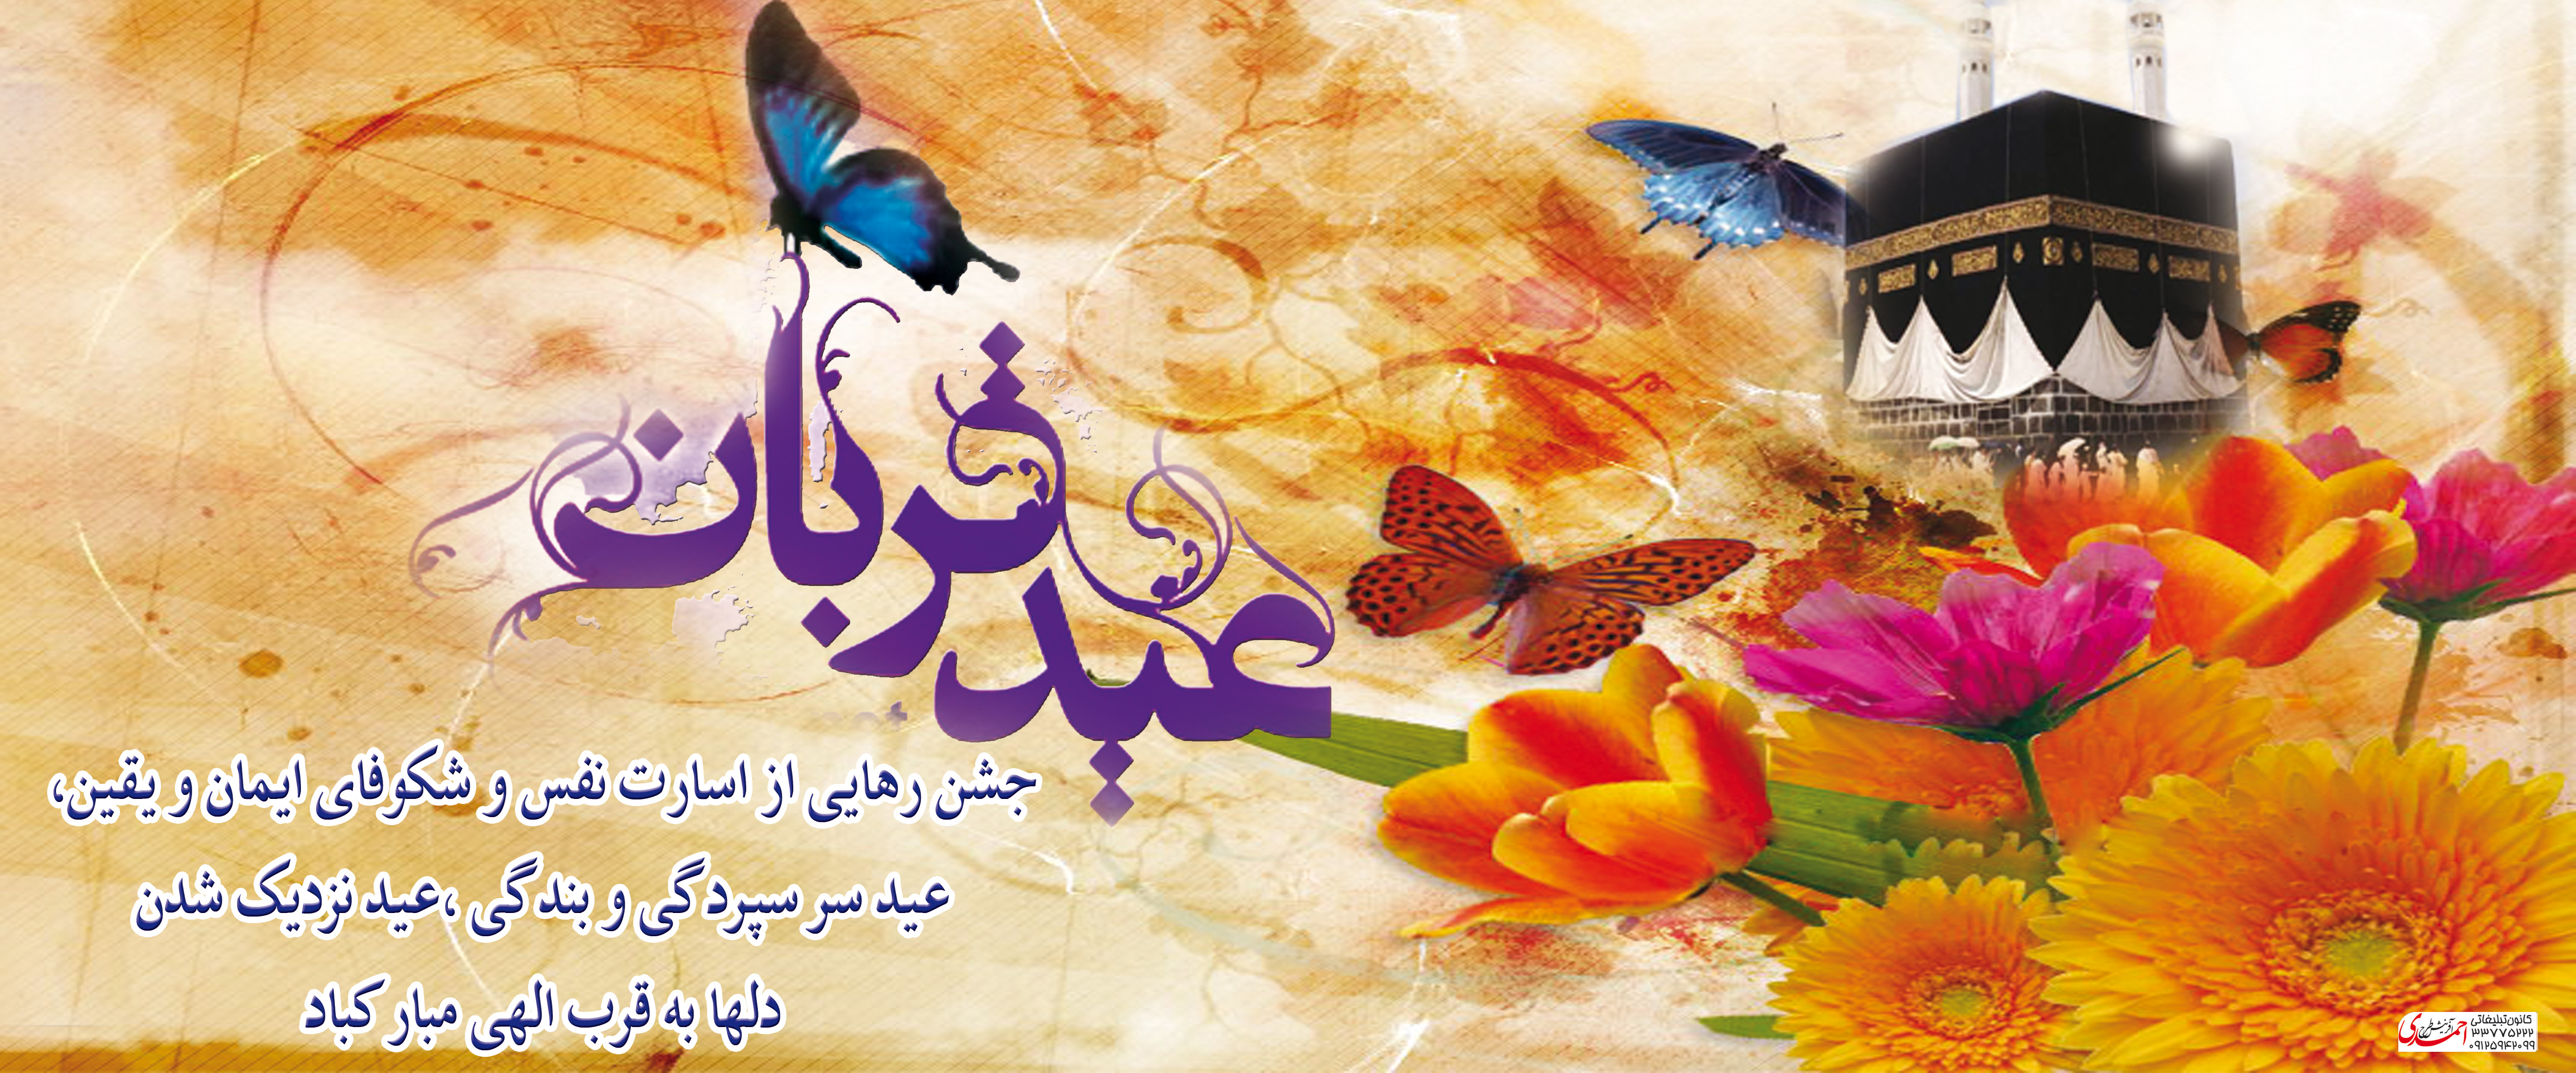 Image result for عید سعید قربان